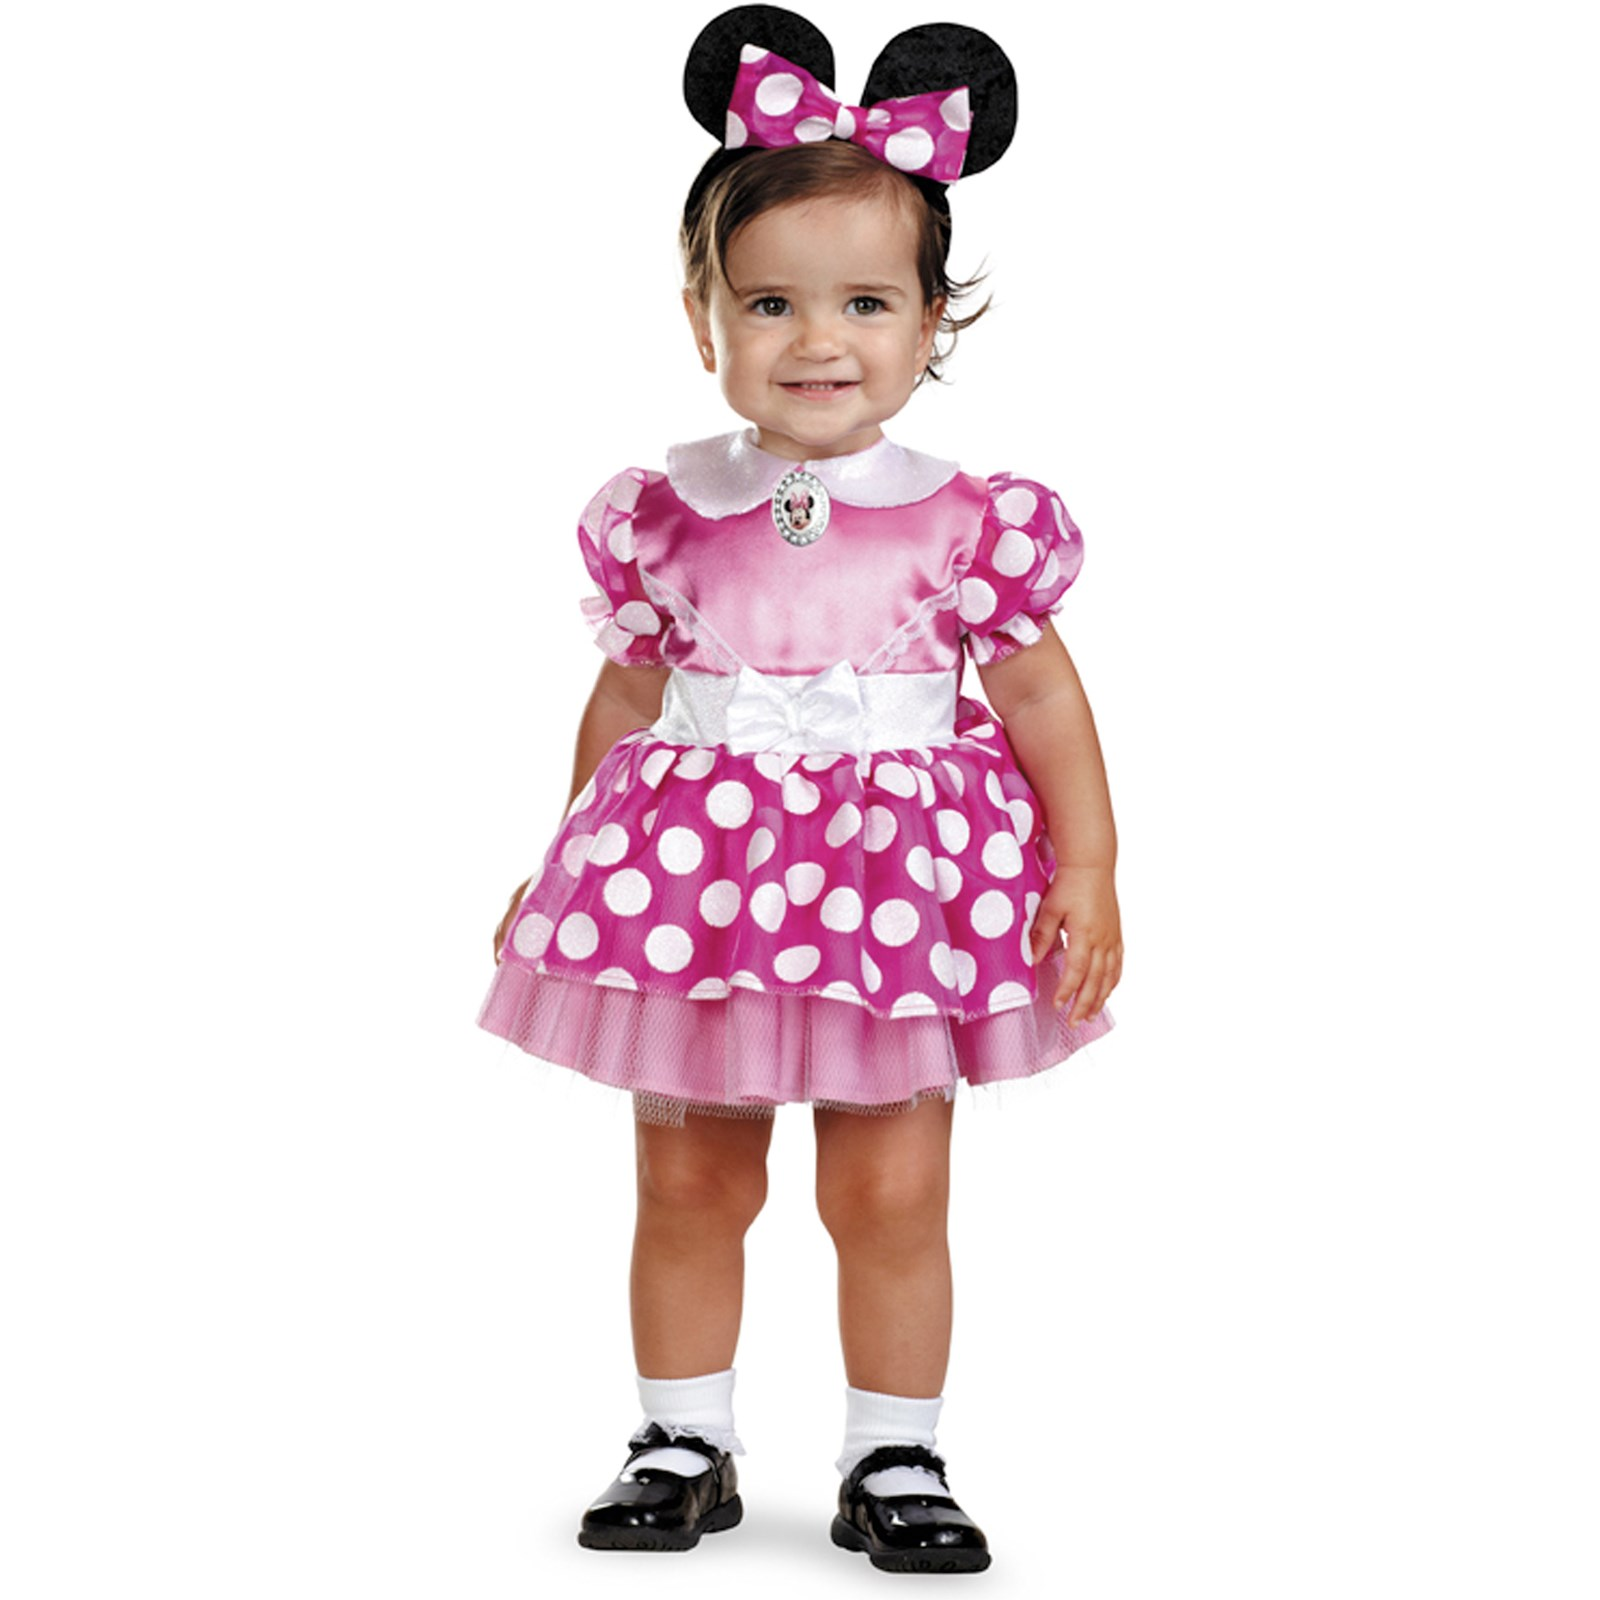 mickey mouse clubhouse pink minnie mouse infant costume - Baby Mickey Mouse Halloween Costume